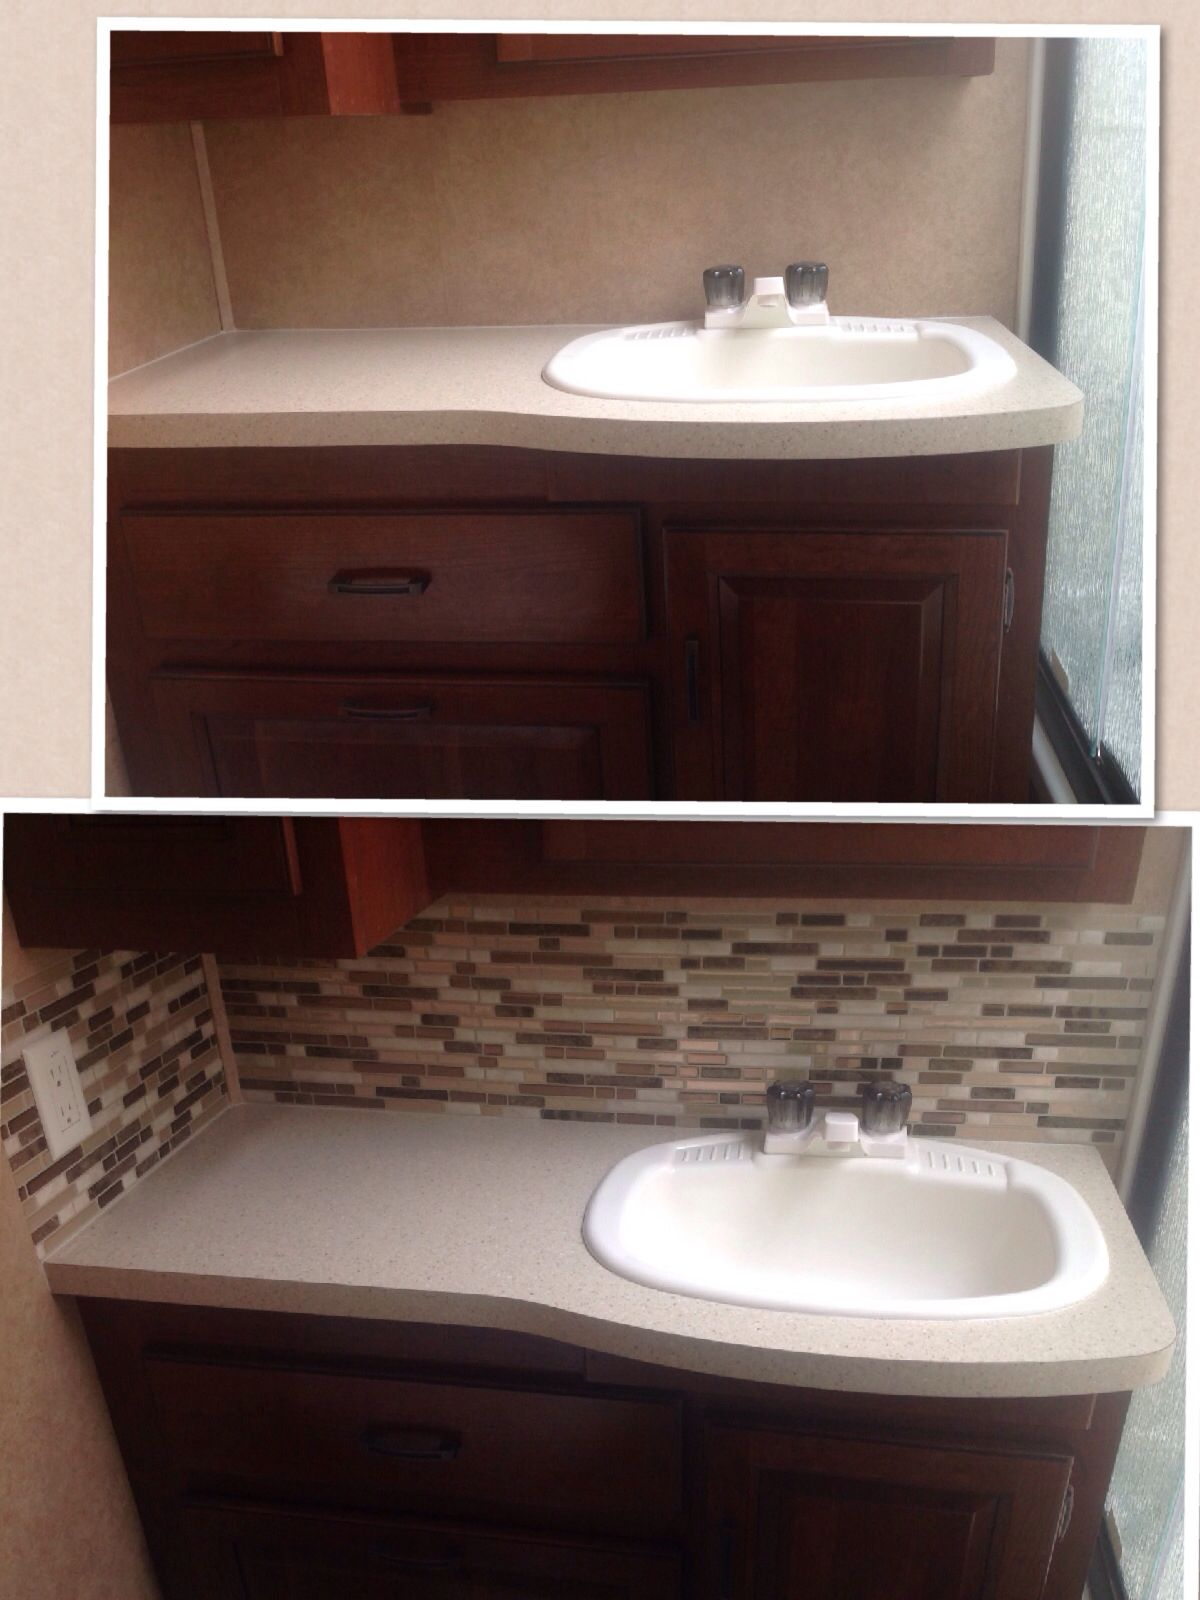 Before After RV Backsplash Mod Using Smart Tiles Peel Sticks - Rv bathroom sink replacement for bathroom decor ideas